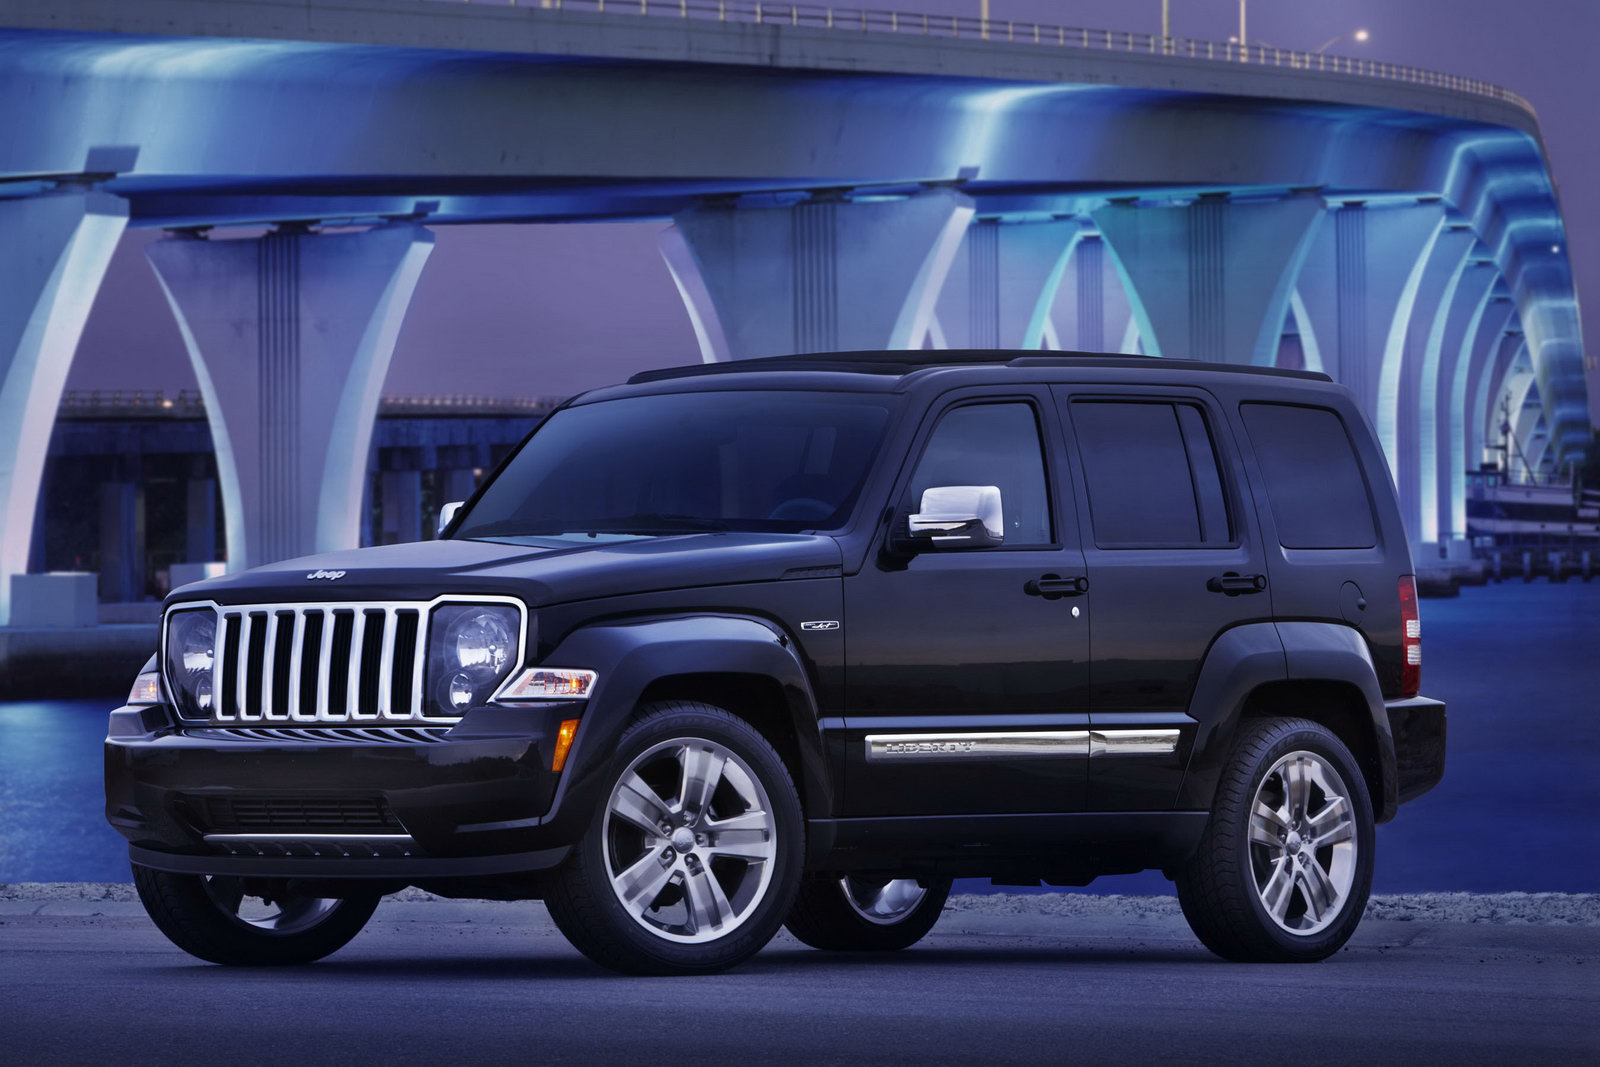 2011 jeep liberty jet review - top speed